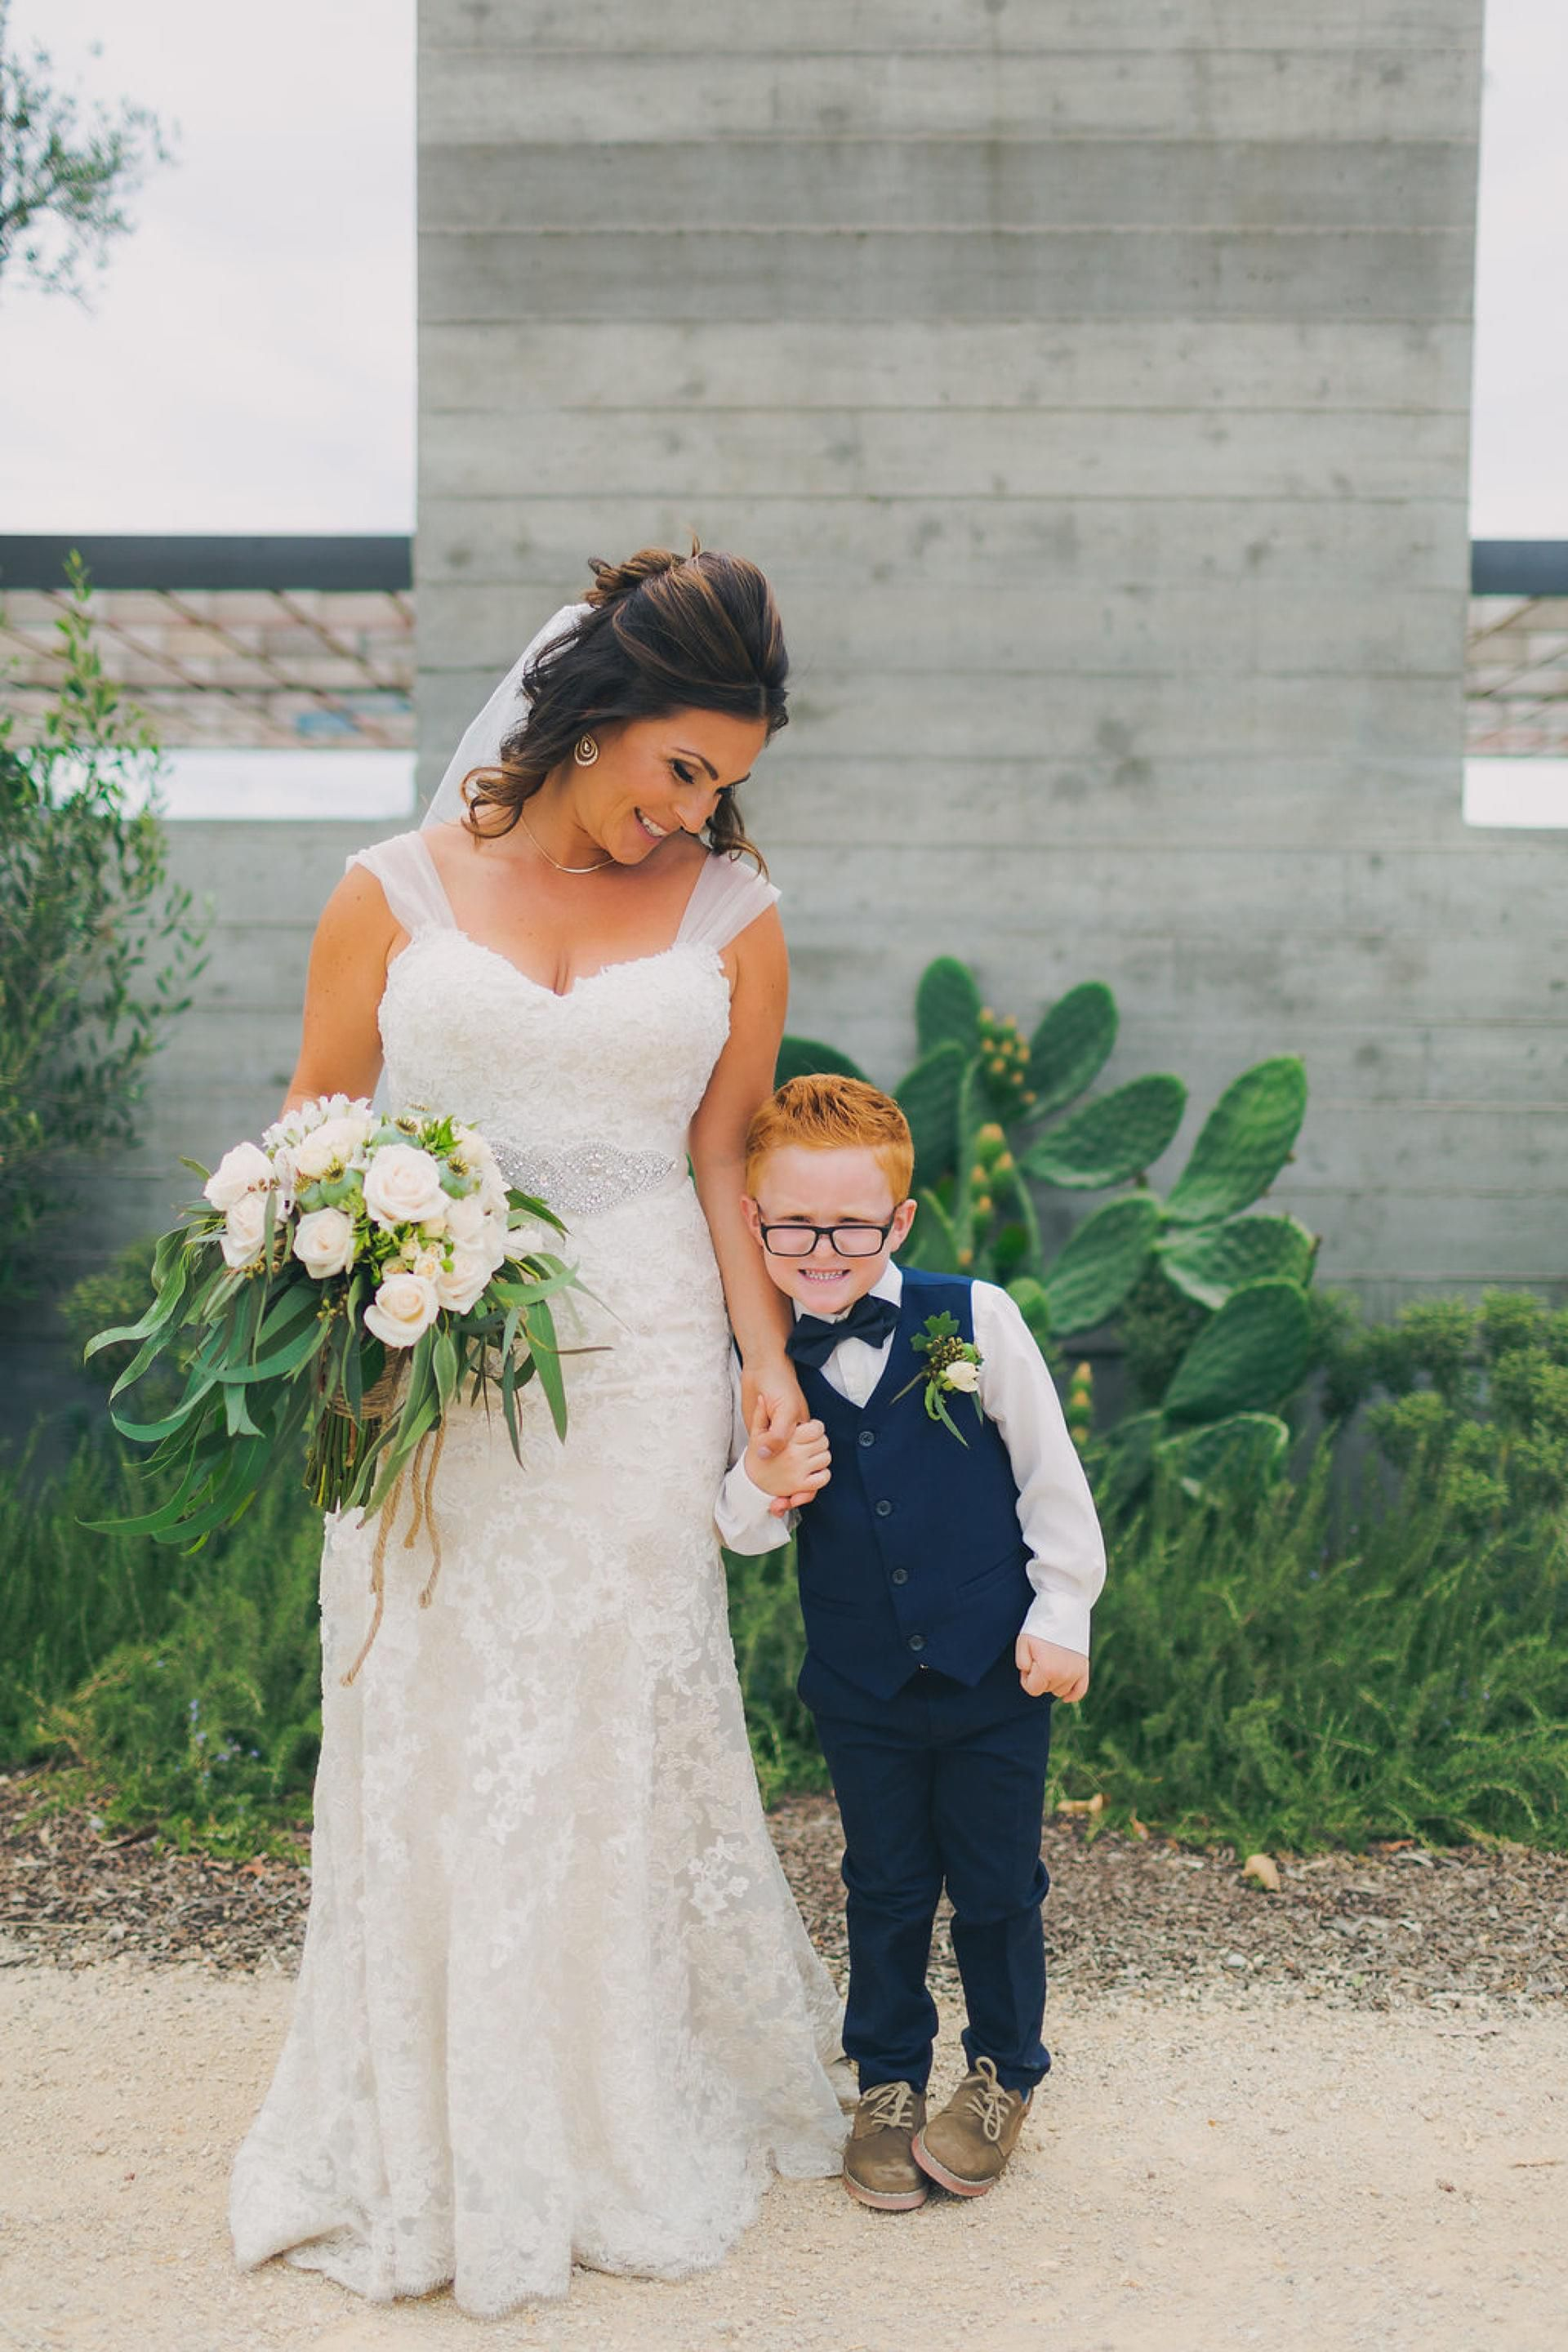 Adorable Ring Bearer Wedding Style Navy Blue Boys Suit Vest Black Bowtie Lindsey Gomes Photography